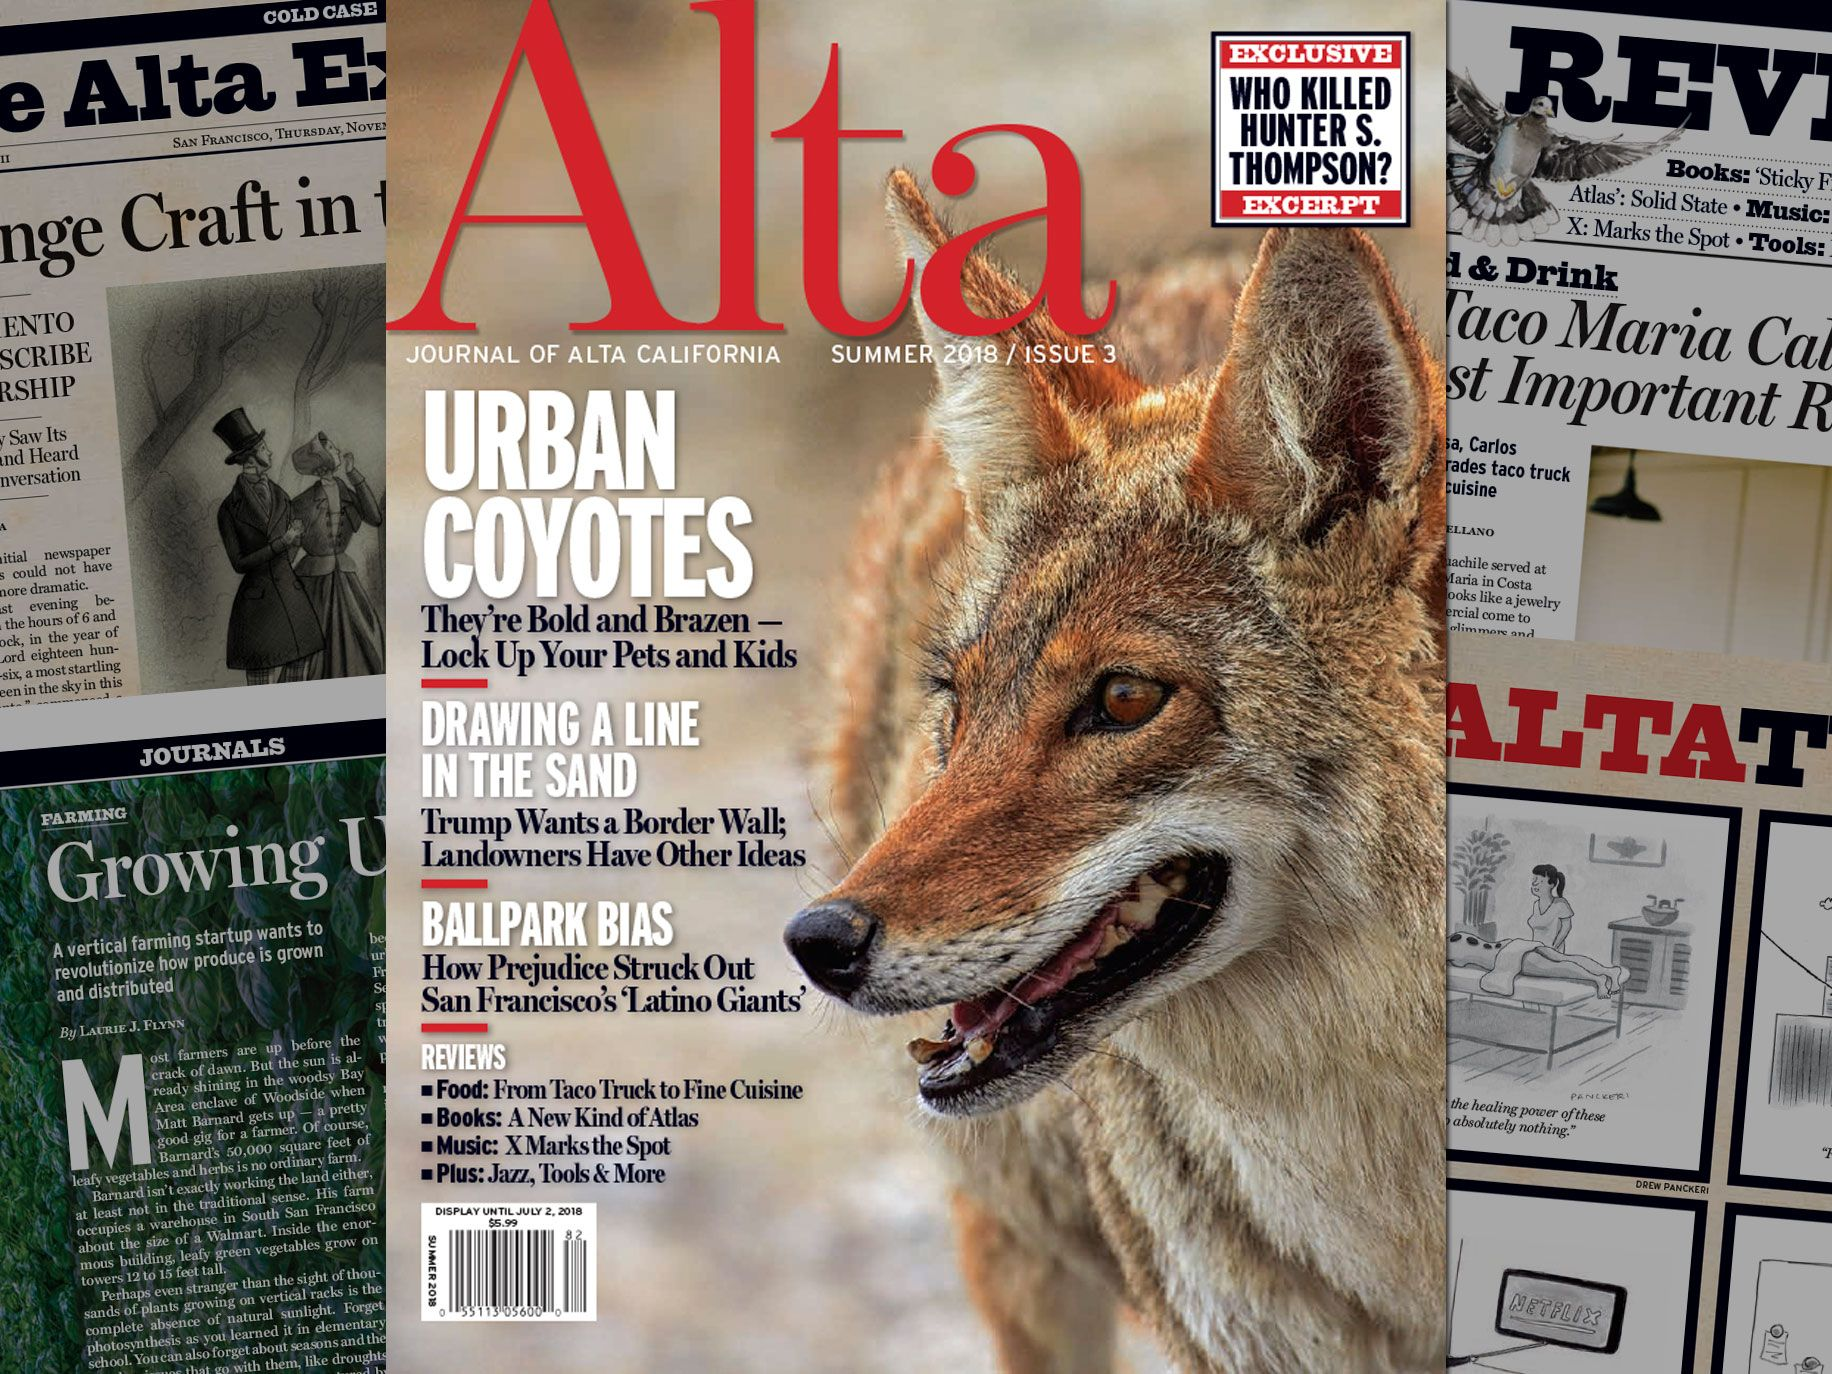 Journal of Alta California Cover - Featuring Urban Coyotes